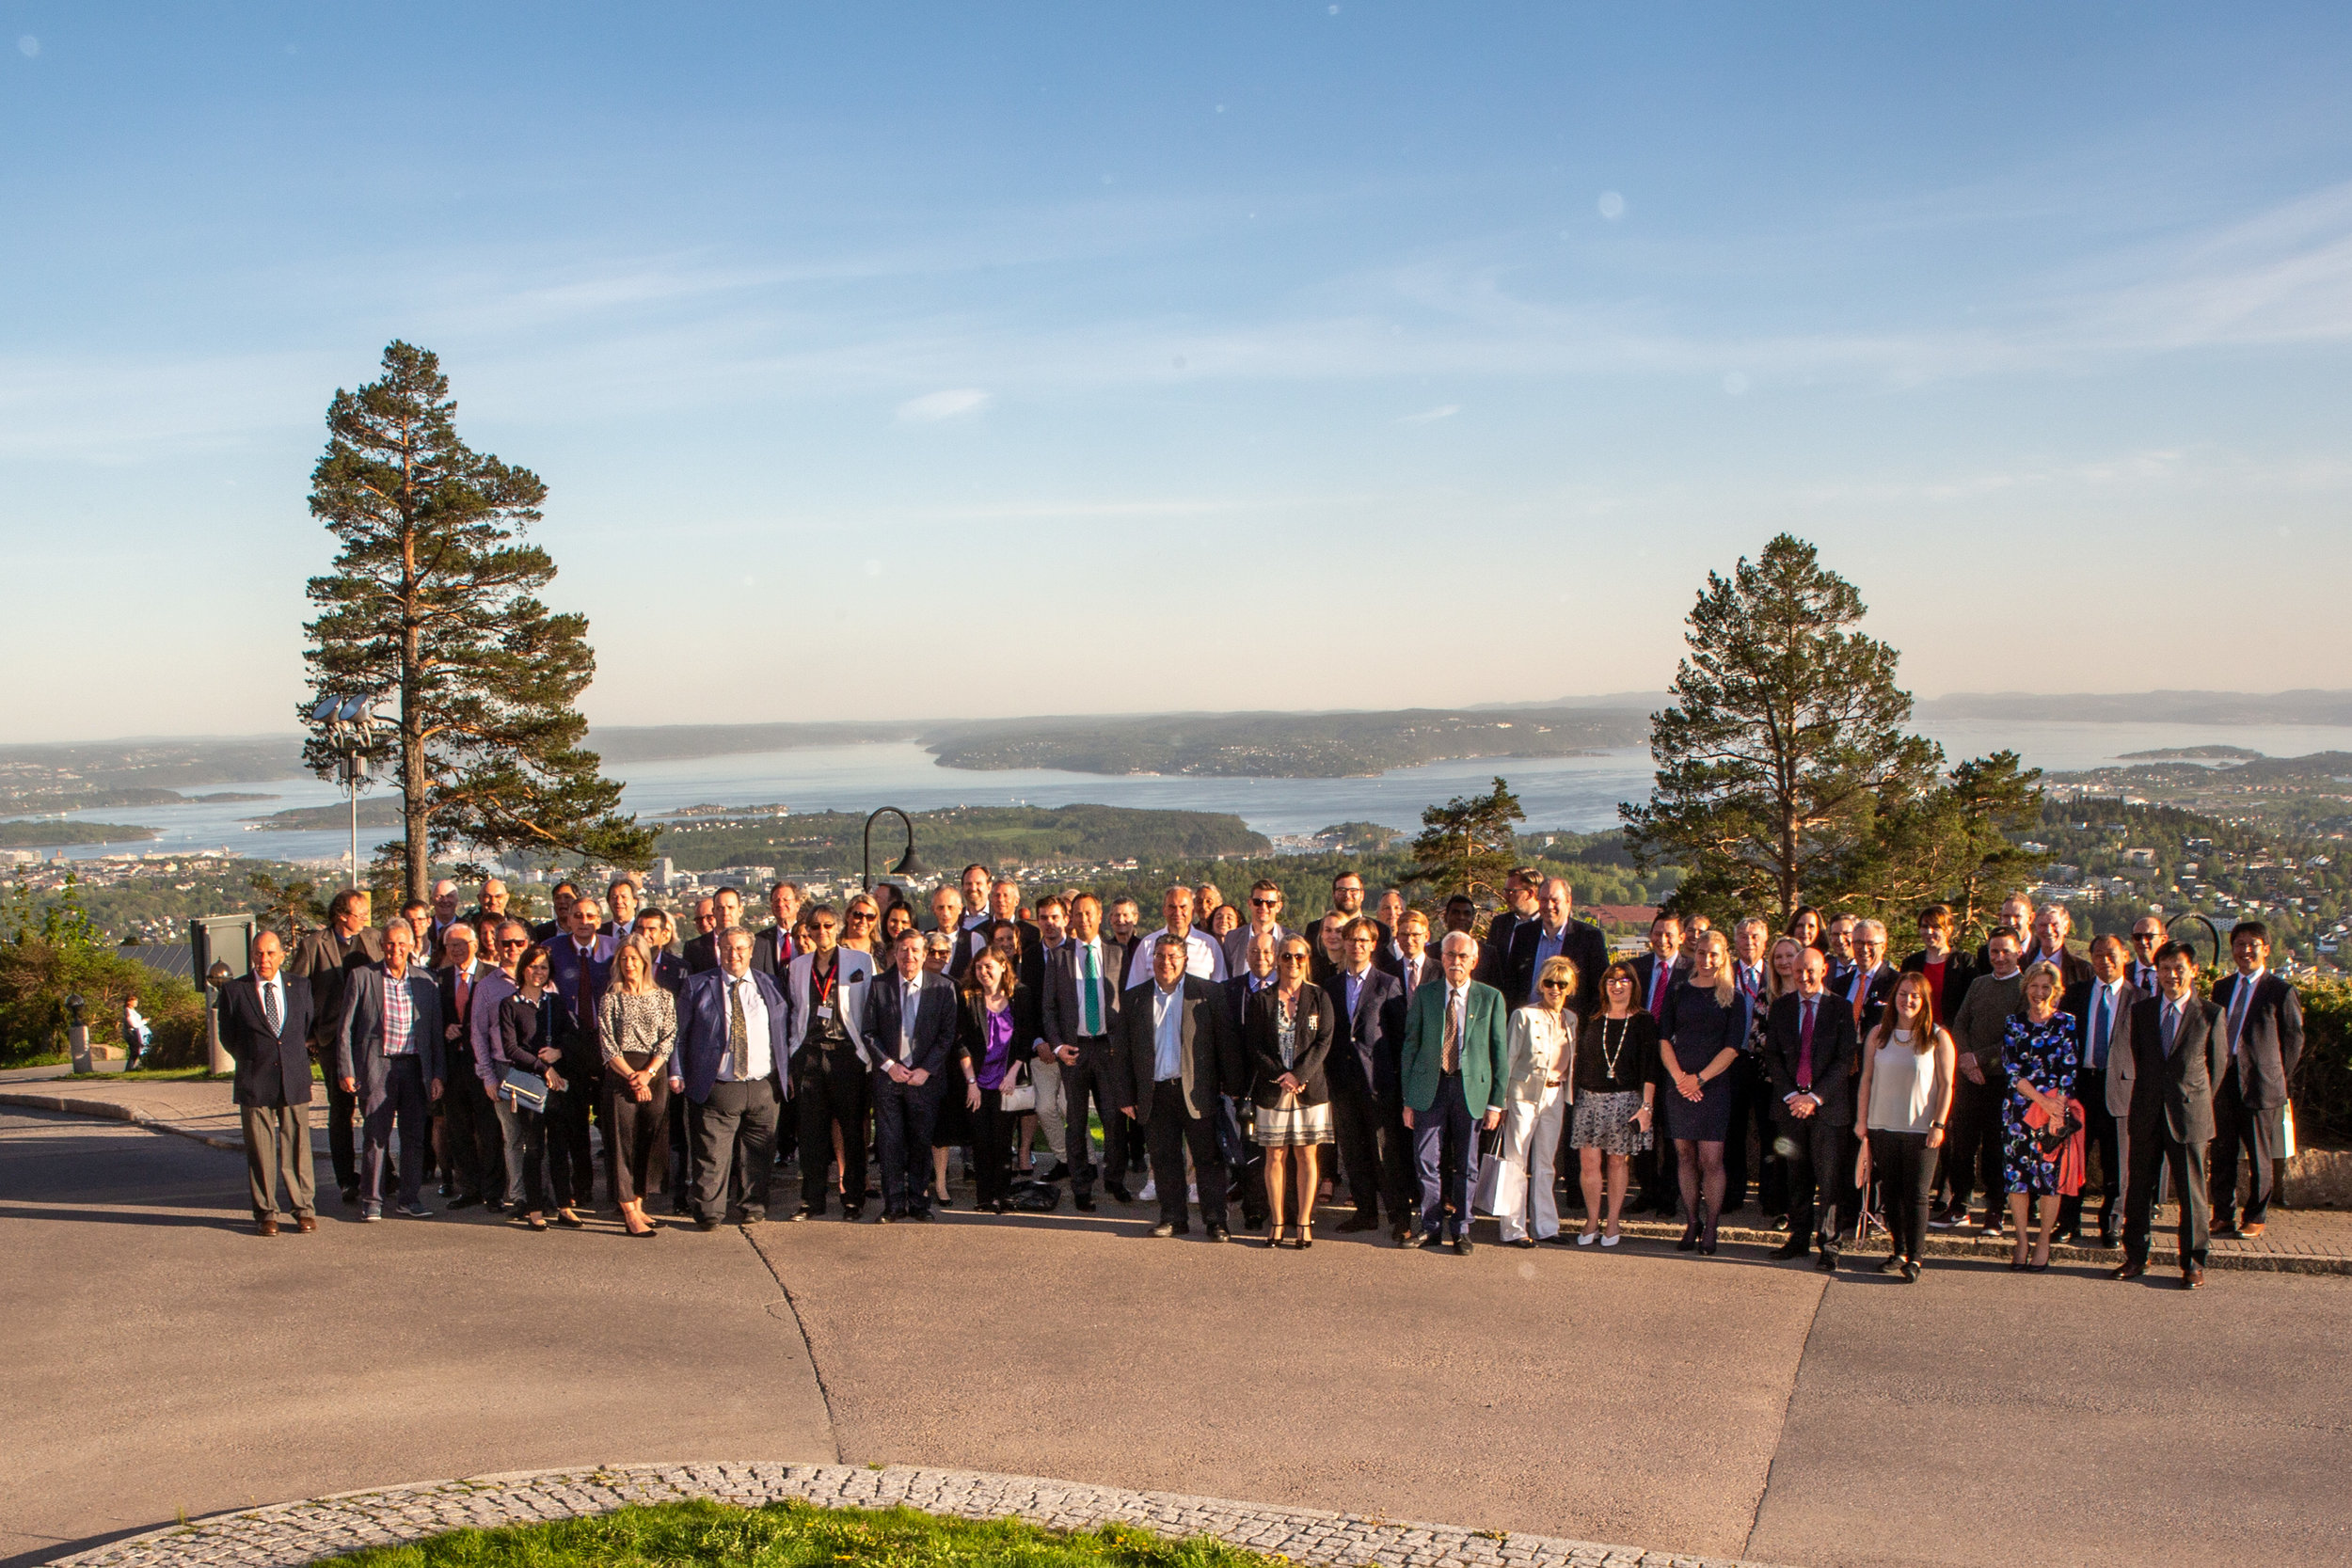 News from the European Mediteranean Horseracing Federation 2019 General Assembly      To many, Norway is the land of the midnight sun or that of the Northern Lights. But to the race-fan, these meteorological mysteries are incidental—Norway is, first and foremost, home to that enigma, the Whip-less Race.  This year, the EMHF's General Assembly 'roadshow' returned to Scandinavia, where the Norwegian Jockey Club hosted our meeting at the country's sole thoroughbred racetrack, Ovrevoll, after which delegates were privileged to experience the joyous and colourful processions of Norway's Constitution Day and also witness firsthand the running of a full card without crops—of which more later.  Our meeting broke fresh ground in a number of ways. For the first time, the press was represented, and a number of commercial enterprises (Flair - manufacturers of Nasal Strips, RASLAB - international distributors of racing data and rights, and Equine Medirecord, who supply veterinary compliance software) joined the social programme and mingled with the administrators. The number of presentations was also increased, from which it was made apparent to everyone, if we did not know it before, that the range of threats we face as a sport is diverse indeed.   Illegal Betting   Amongst these threats is one which to date has had far greater impact in Asia, but whose tentacles are increasingly taking Europe into their grasp. The enemy is illegal betting, on which Brant Dunshea, Chief Regulatory Officer of British Horseracing Authority, gave a presentation. Recently co-opted to bring a European perspective to a task-force set up by the EMHF's equivalent in Asia—the Asian Racing Federation—Dunshea was shocked at the sheer size of the problem.  Defining 'illegal betting' as including betting which takes place in an unregulated environment, (e.g., an off-shore operation which was contributing nothing to the sport and was under the regulatory control of neither government nor racing authority), h